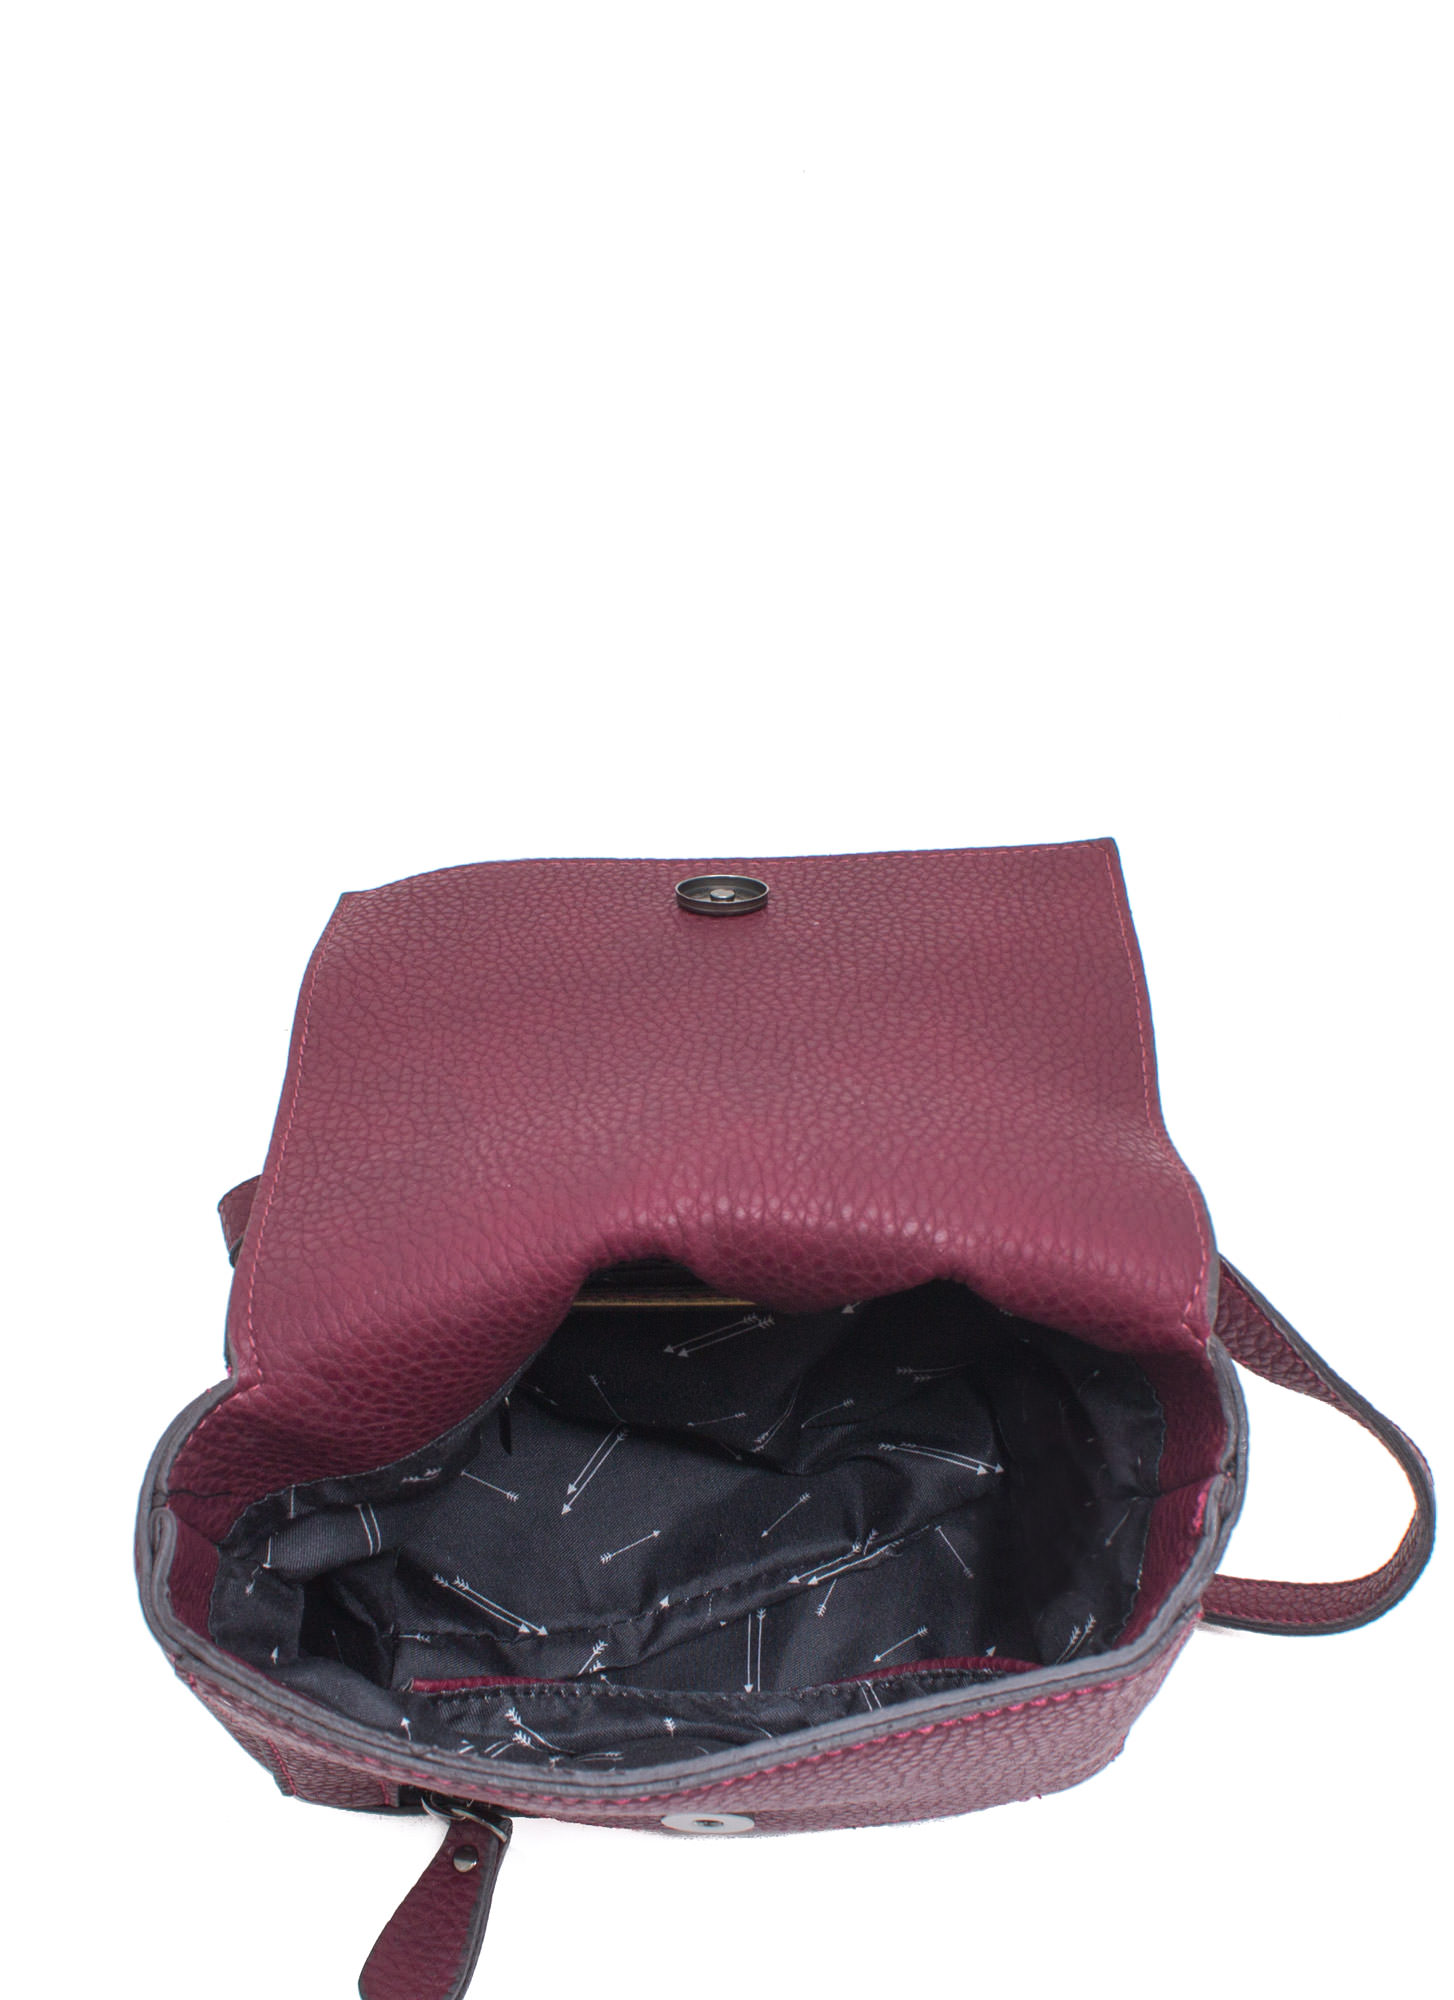 Rocker Studded Cross-Body Bag BURGUNDY